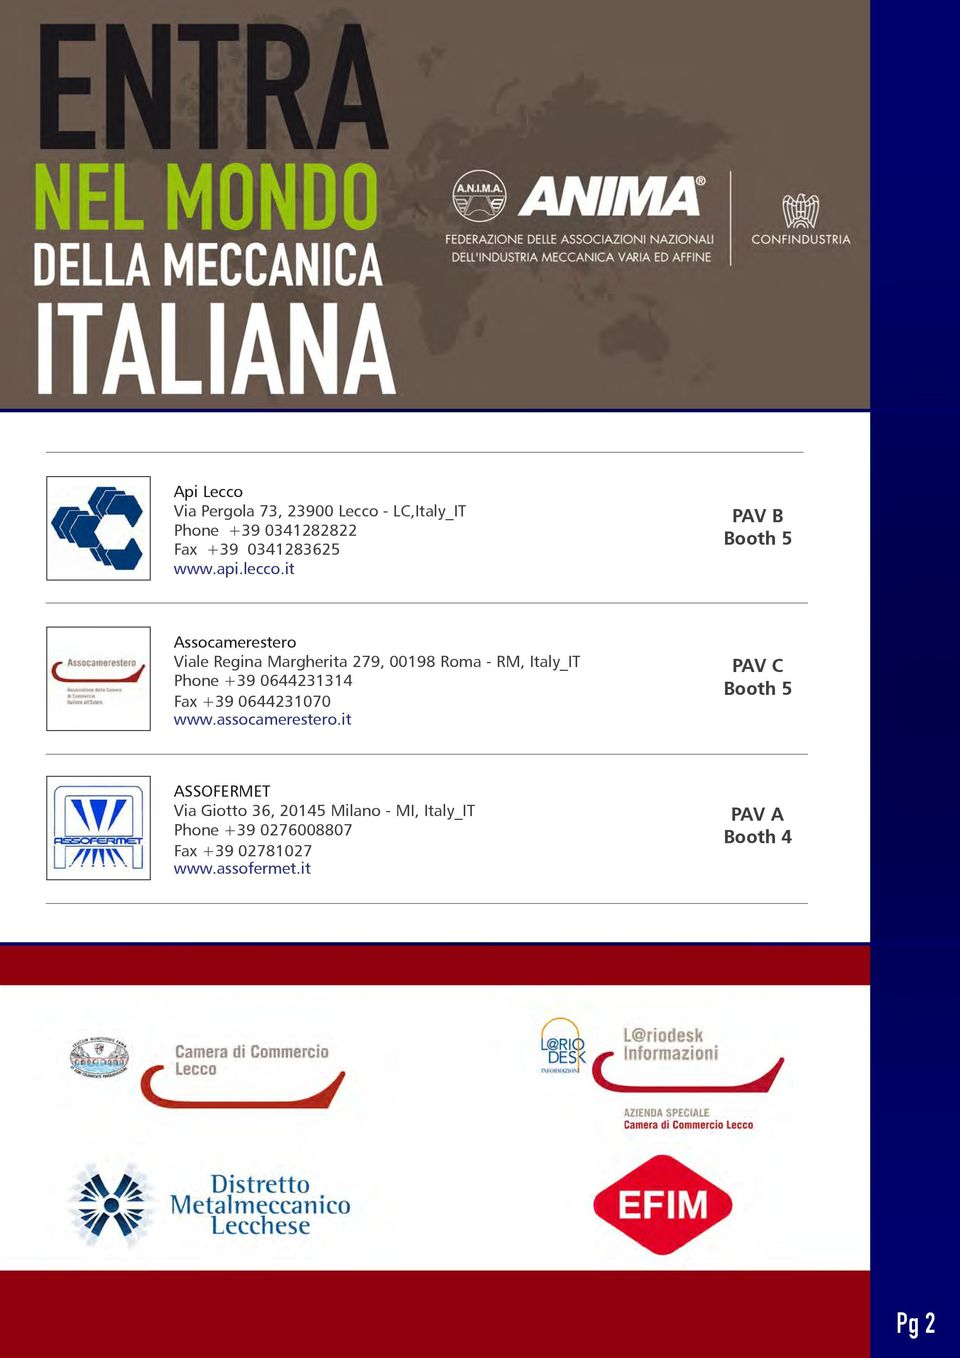 it Booth 5 Assocamerestero Viale Regina Margherita 279, 00198 Roma - RM, Italy_IT Phone +39